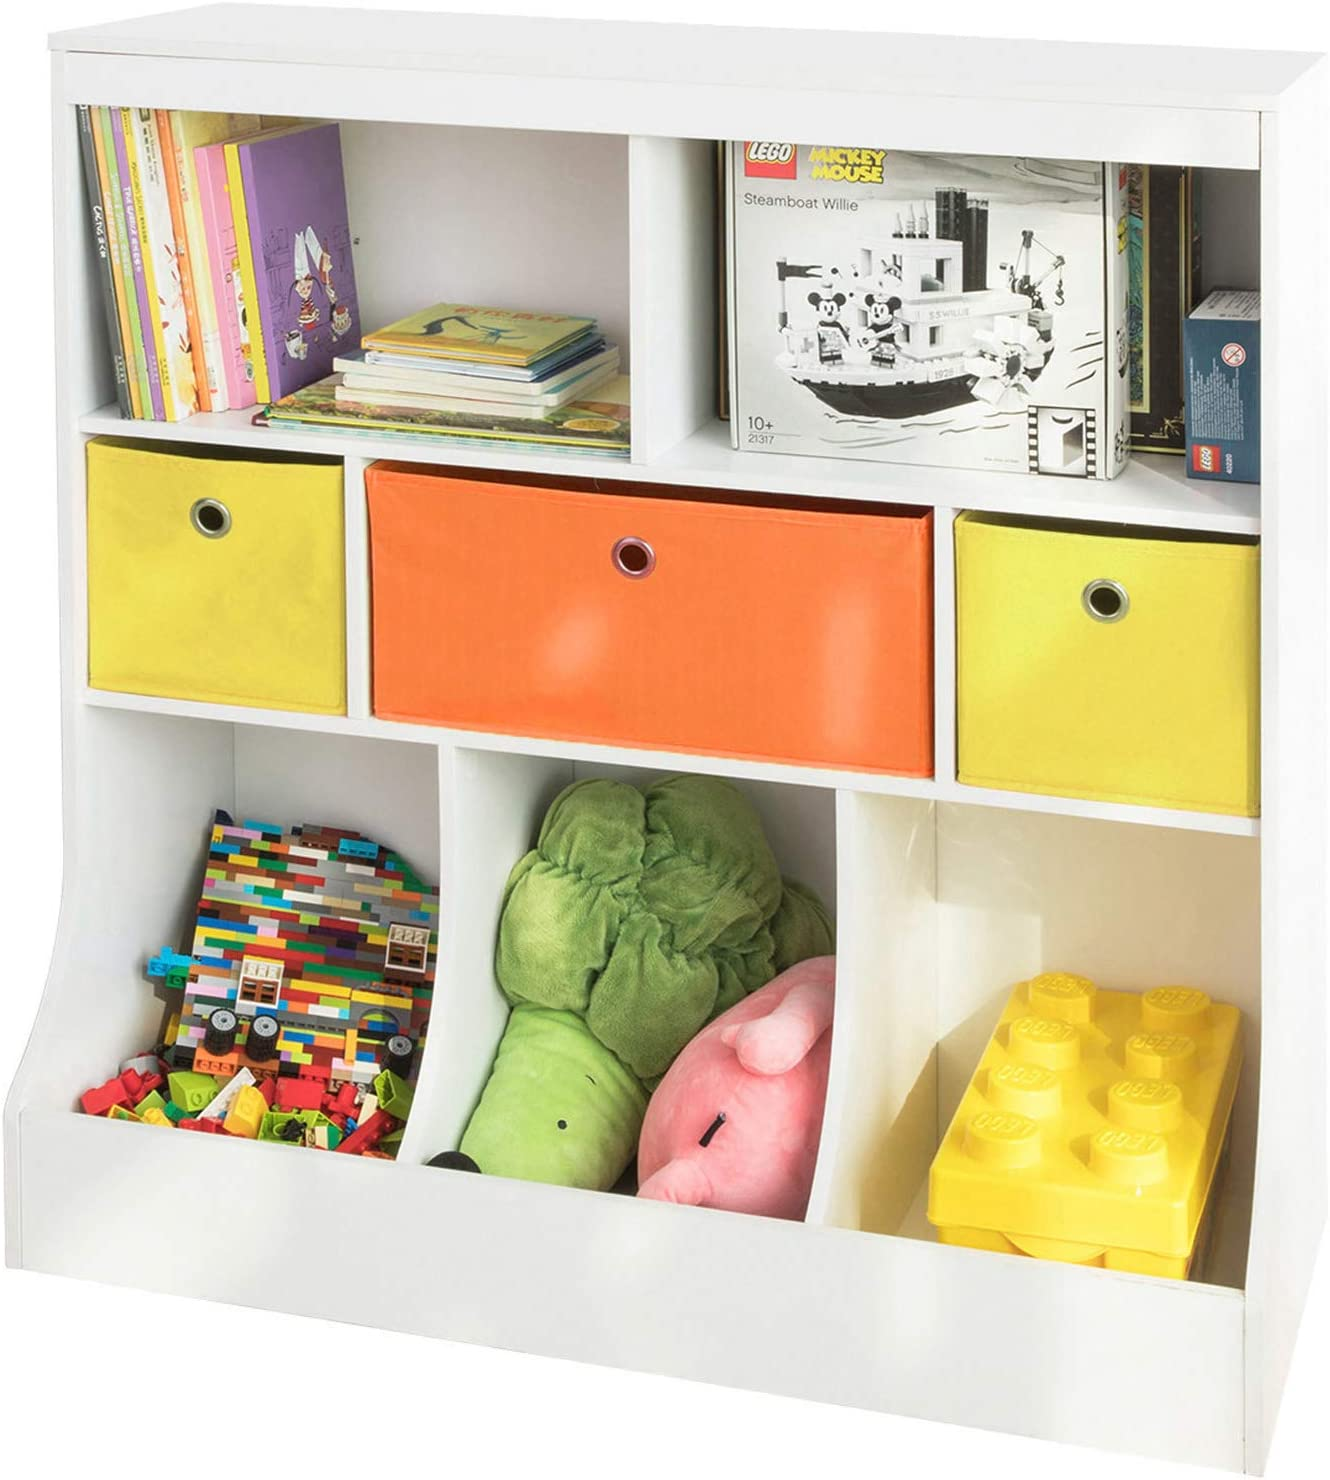 SoBuy® KMB26-W, Children Kids Bookcase Book Shelf Toy Storage Unit Storage Display Shelf Organizer with Fabric Drawers